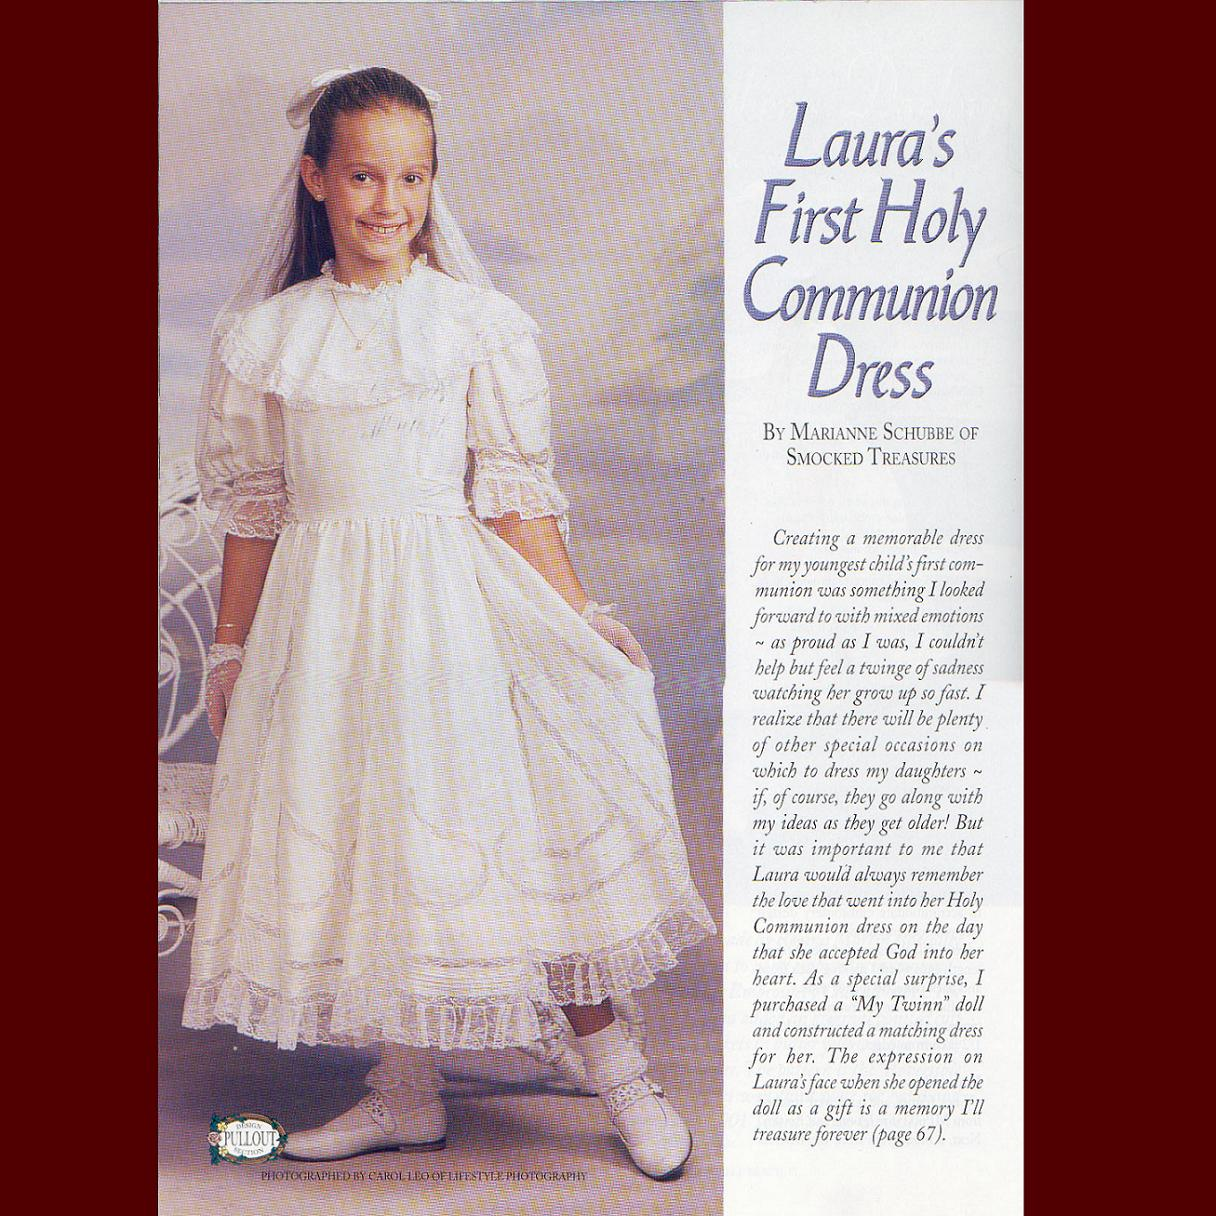 Laura's First Holy Communion Dress